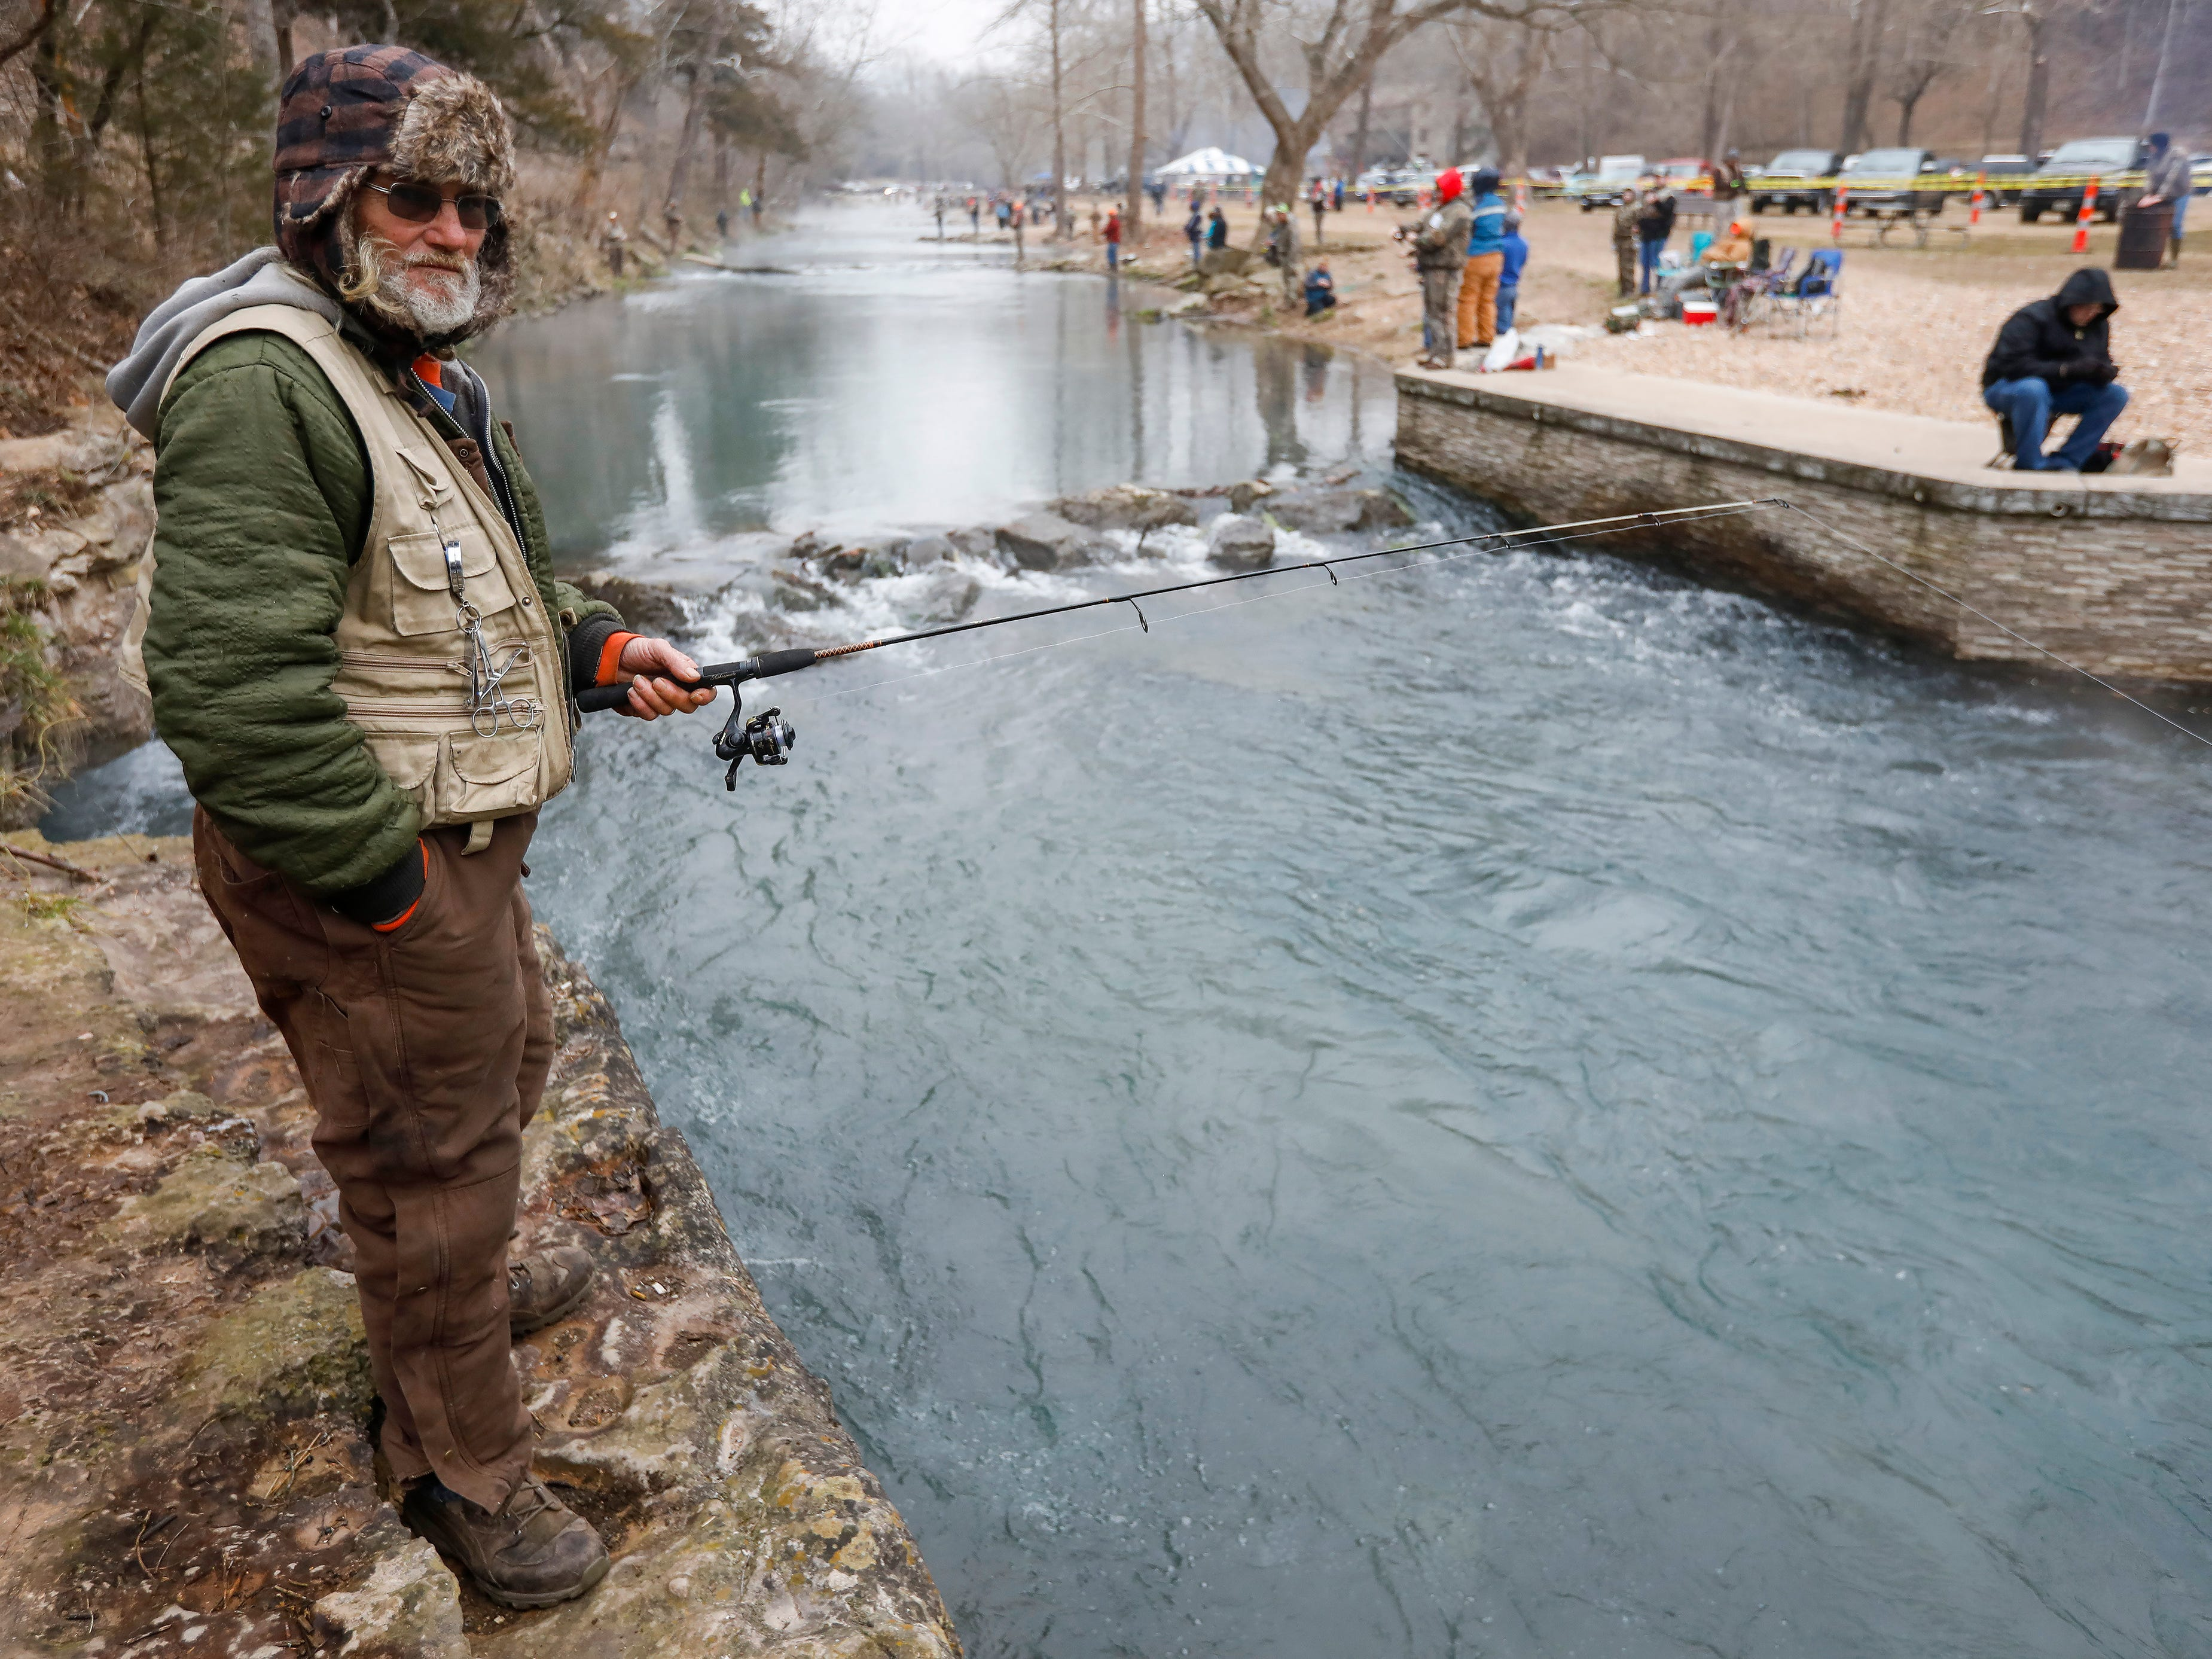 Paul Scott, of Neosho, waits for a fish to strike his lure on opening day of trout season at Roaring River State Park on Friday, Mar. 1, 2019.